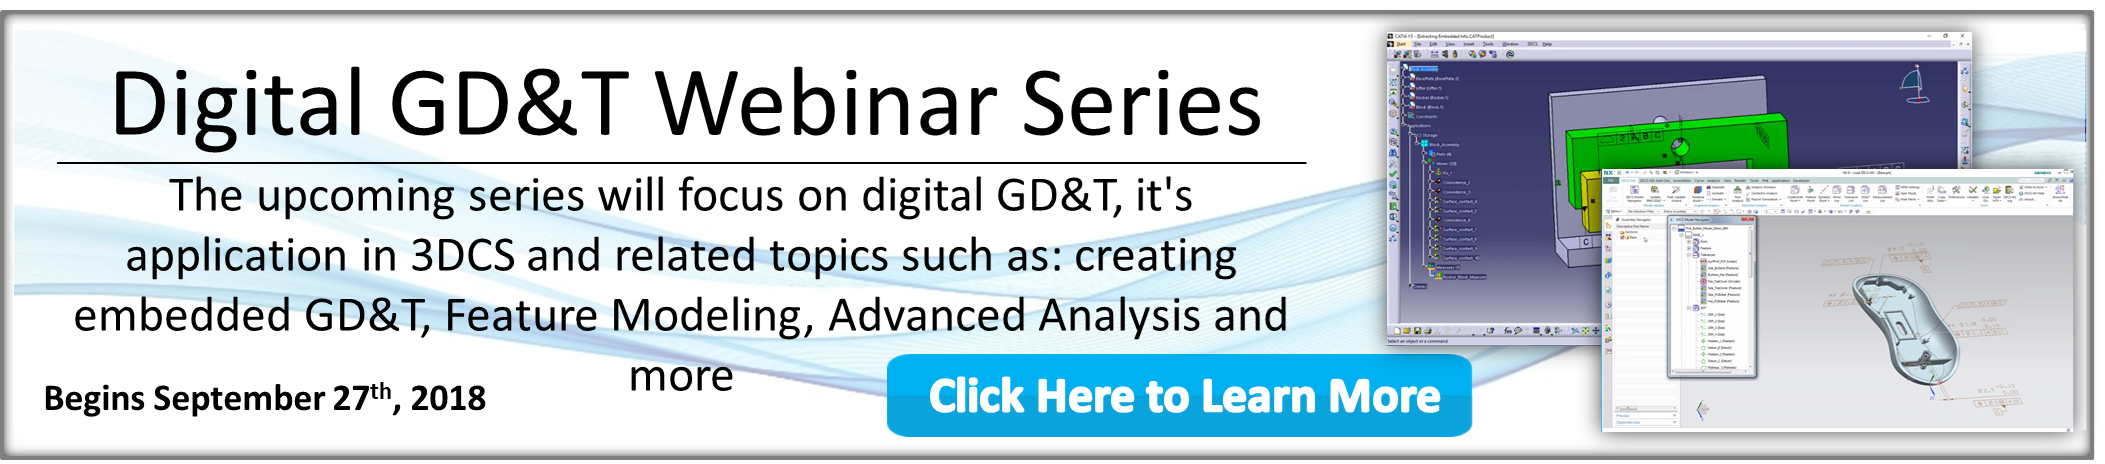 digital-gdandt-webinar-series-2018